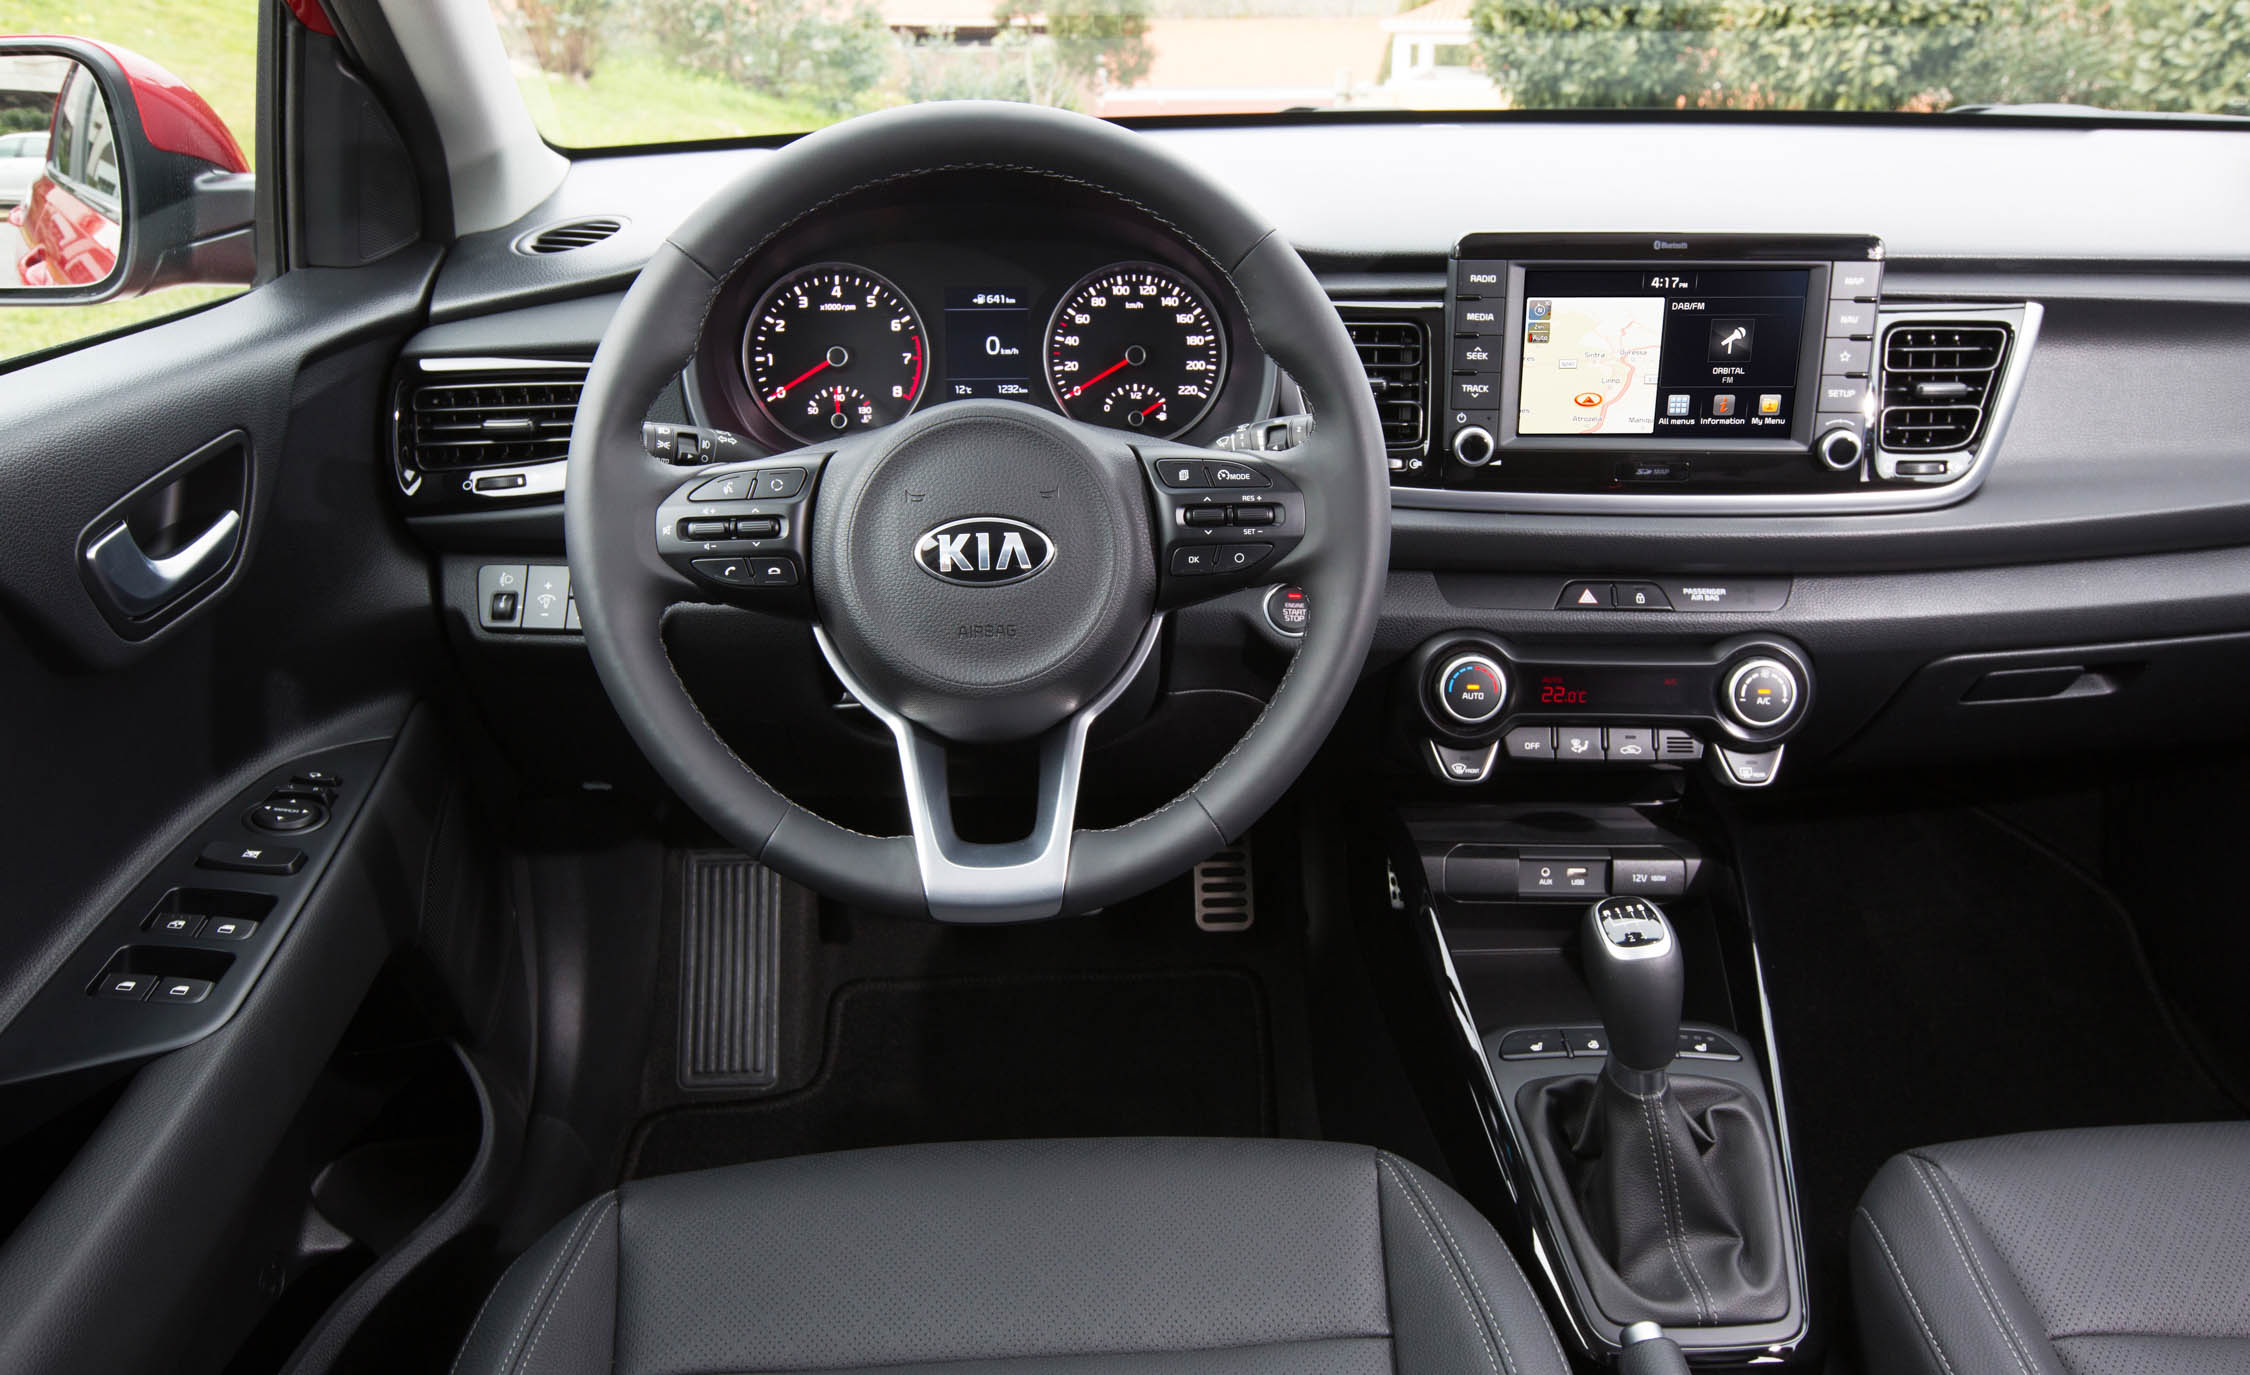 2018 kia rio cars exclusive videos and photos updates. Black Bedroom Furniture Sets. Home Design Ideas